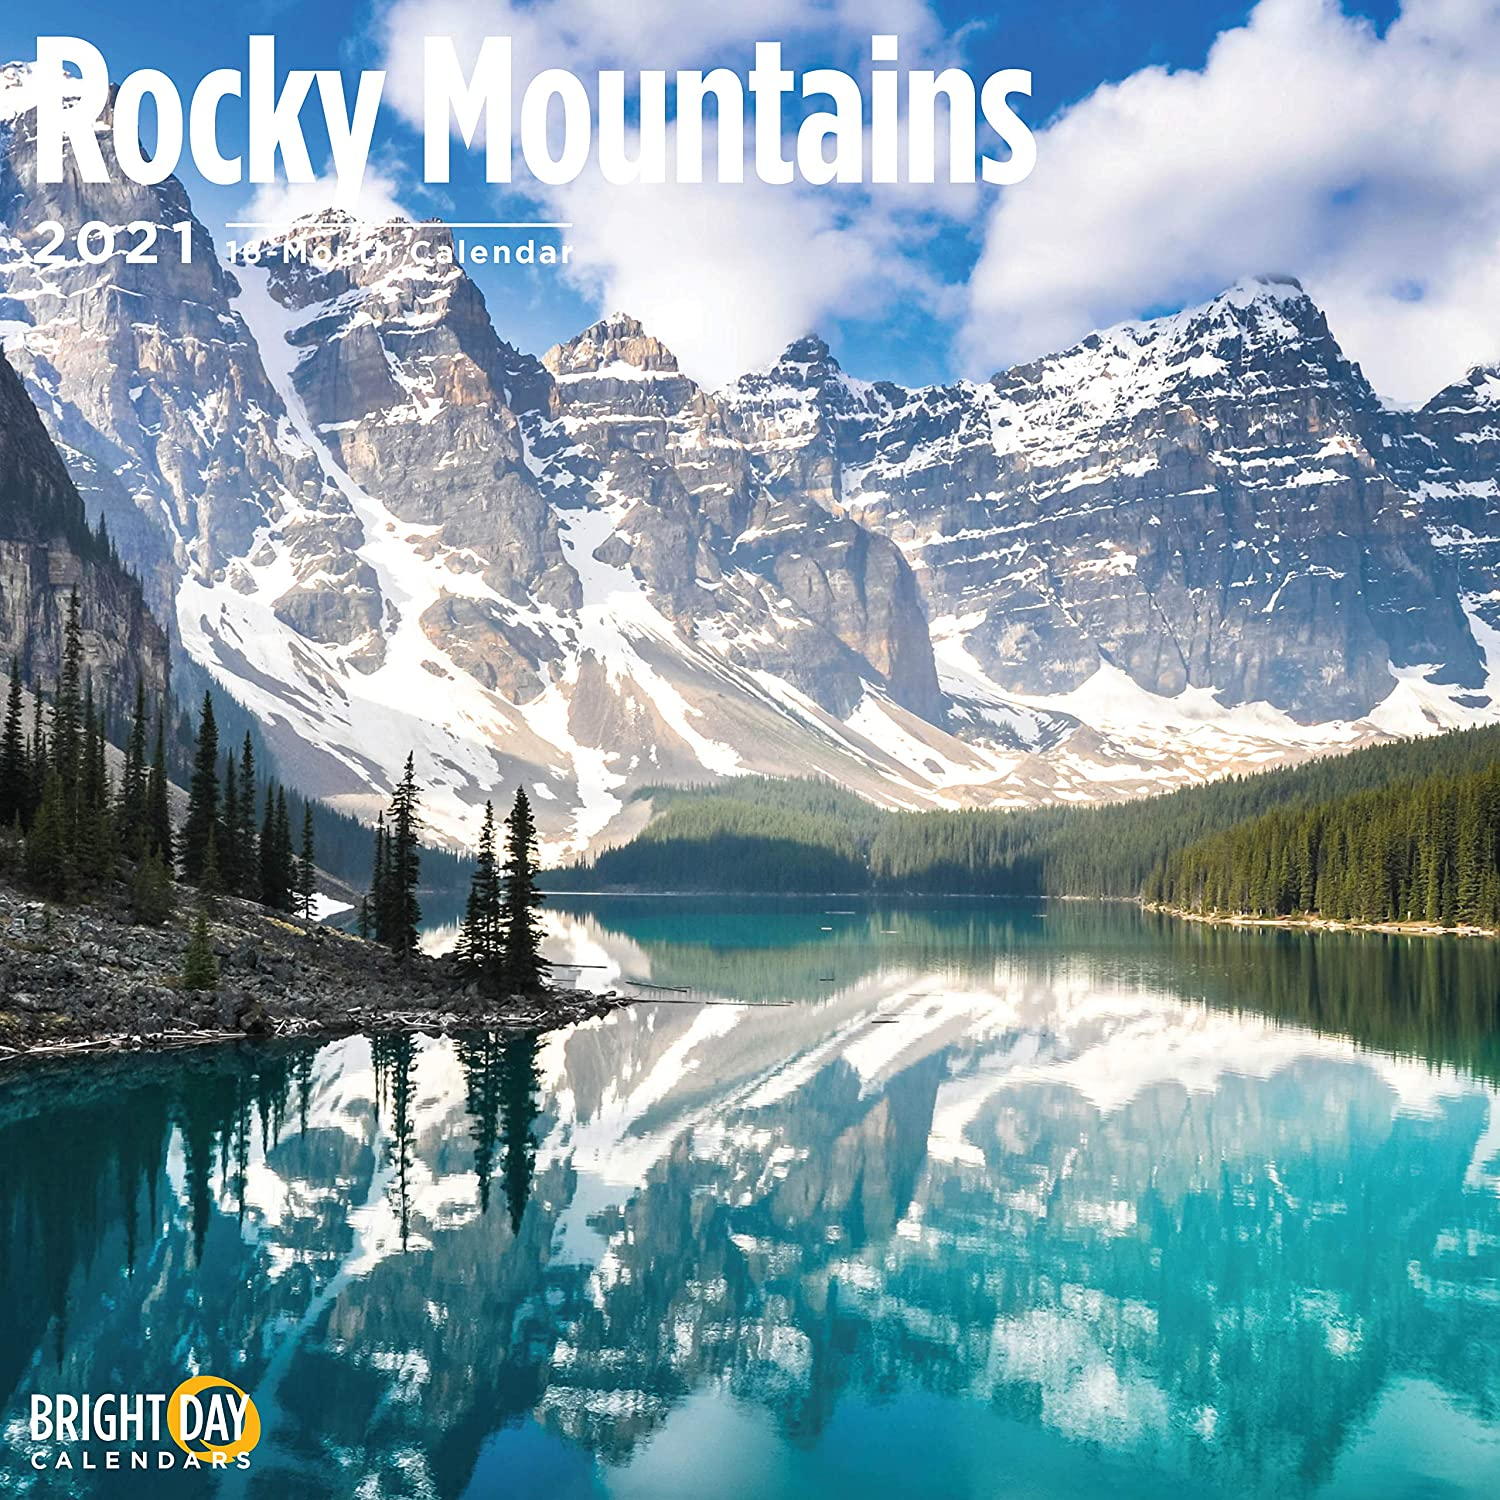 2021 Rocky Mountains Wall Calendar by Bright Day, 12 x 12 Inch, National Parks Camping Hiking